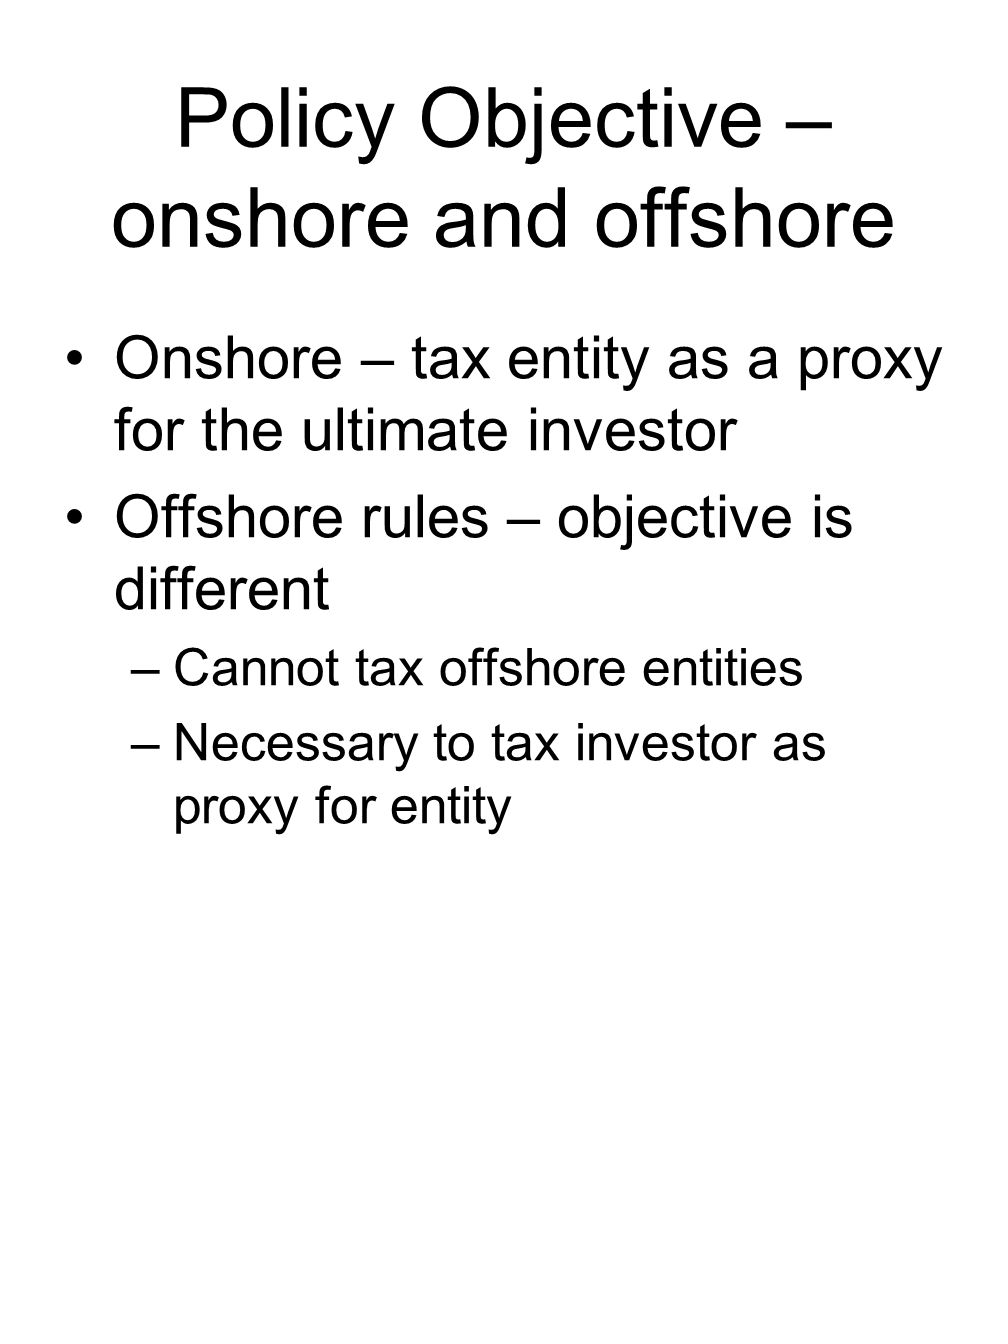 Policy Objective – onshore and offshore Onshore – tax entity as a proxy for the ultimate investor Offshore rules – objective is different –Cannot tax offshore entities –Necessary to tax investor as proxy for entity